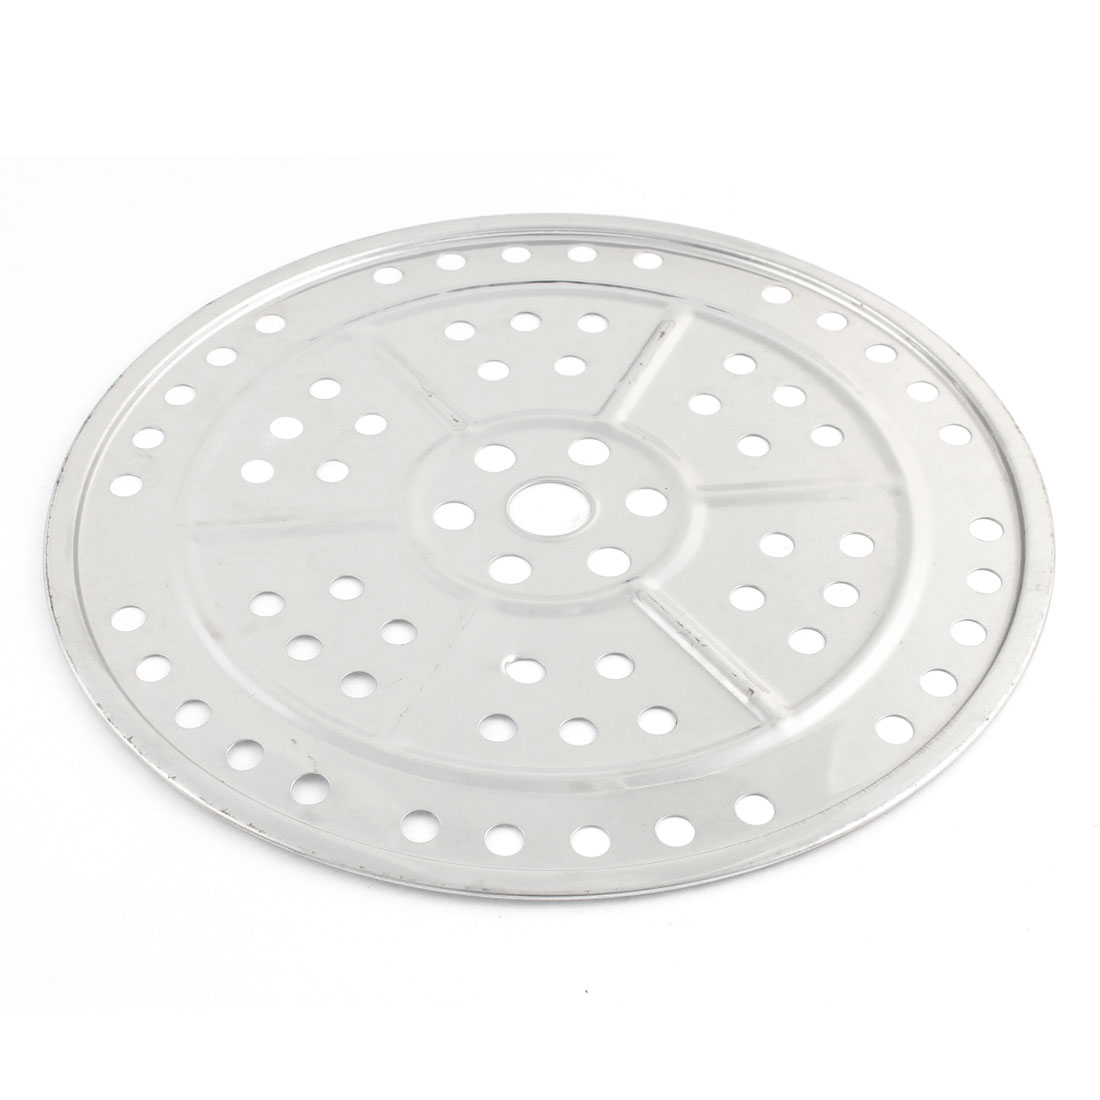 Cookware 24cm Dia Metal Round Shaped Food Cooking Steamer Steaming Rack Insert Plate